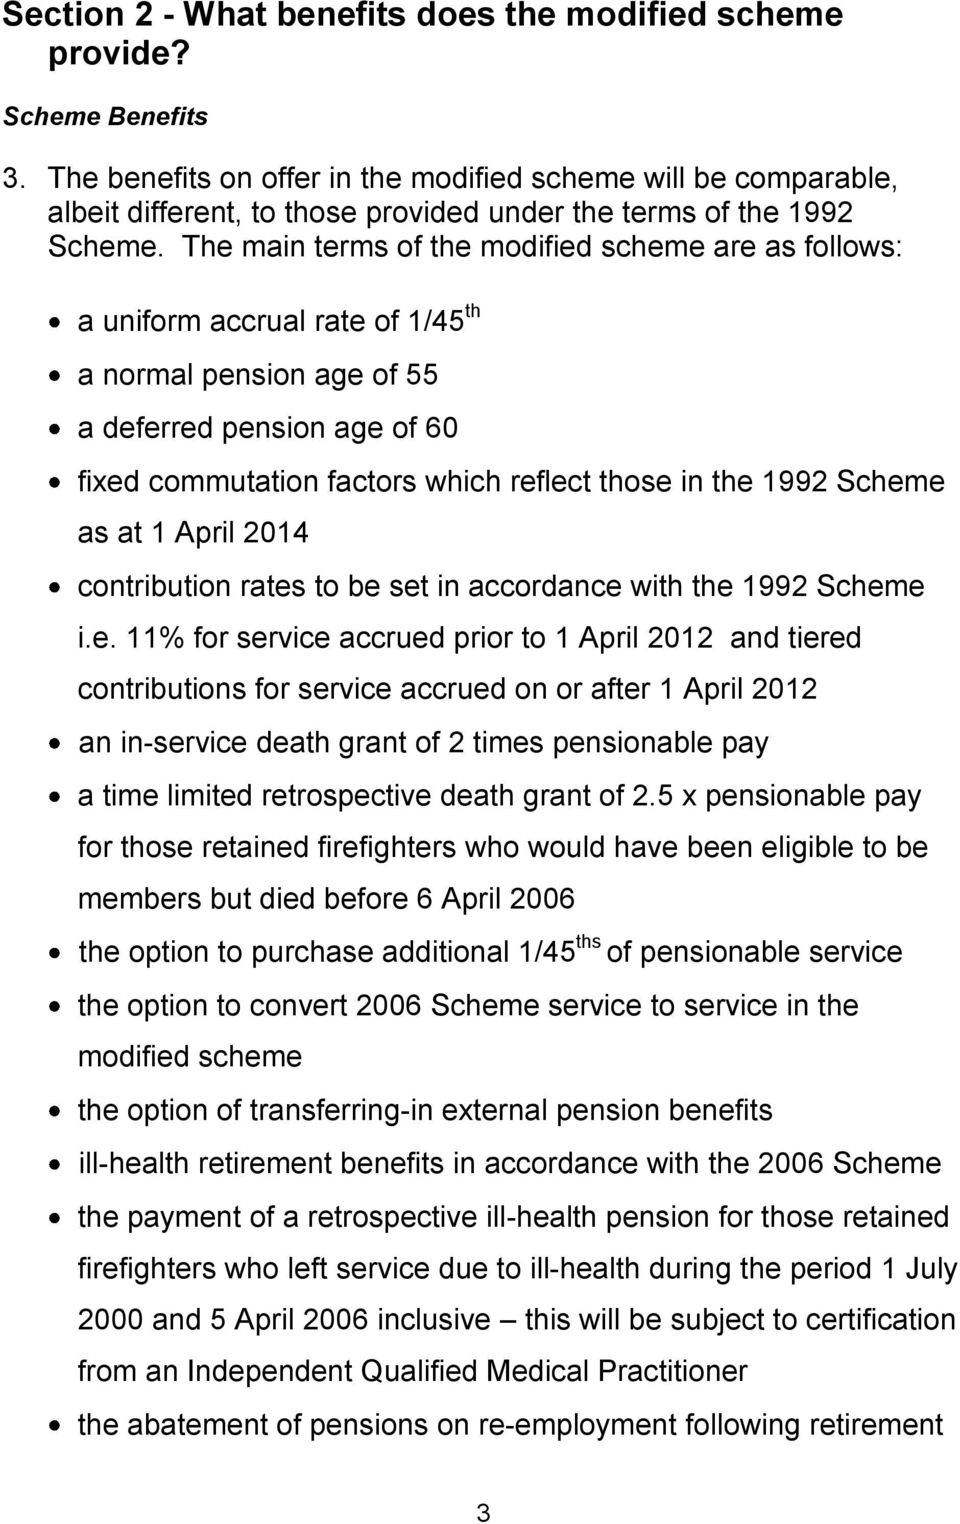 The main terms of the modified scheme are as follows: a uniform accrual rate of 1/45 th a normal pension age of 55 a deferred pension age of 60 fixed commutation factors which reflect those in the